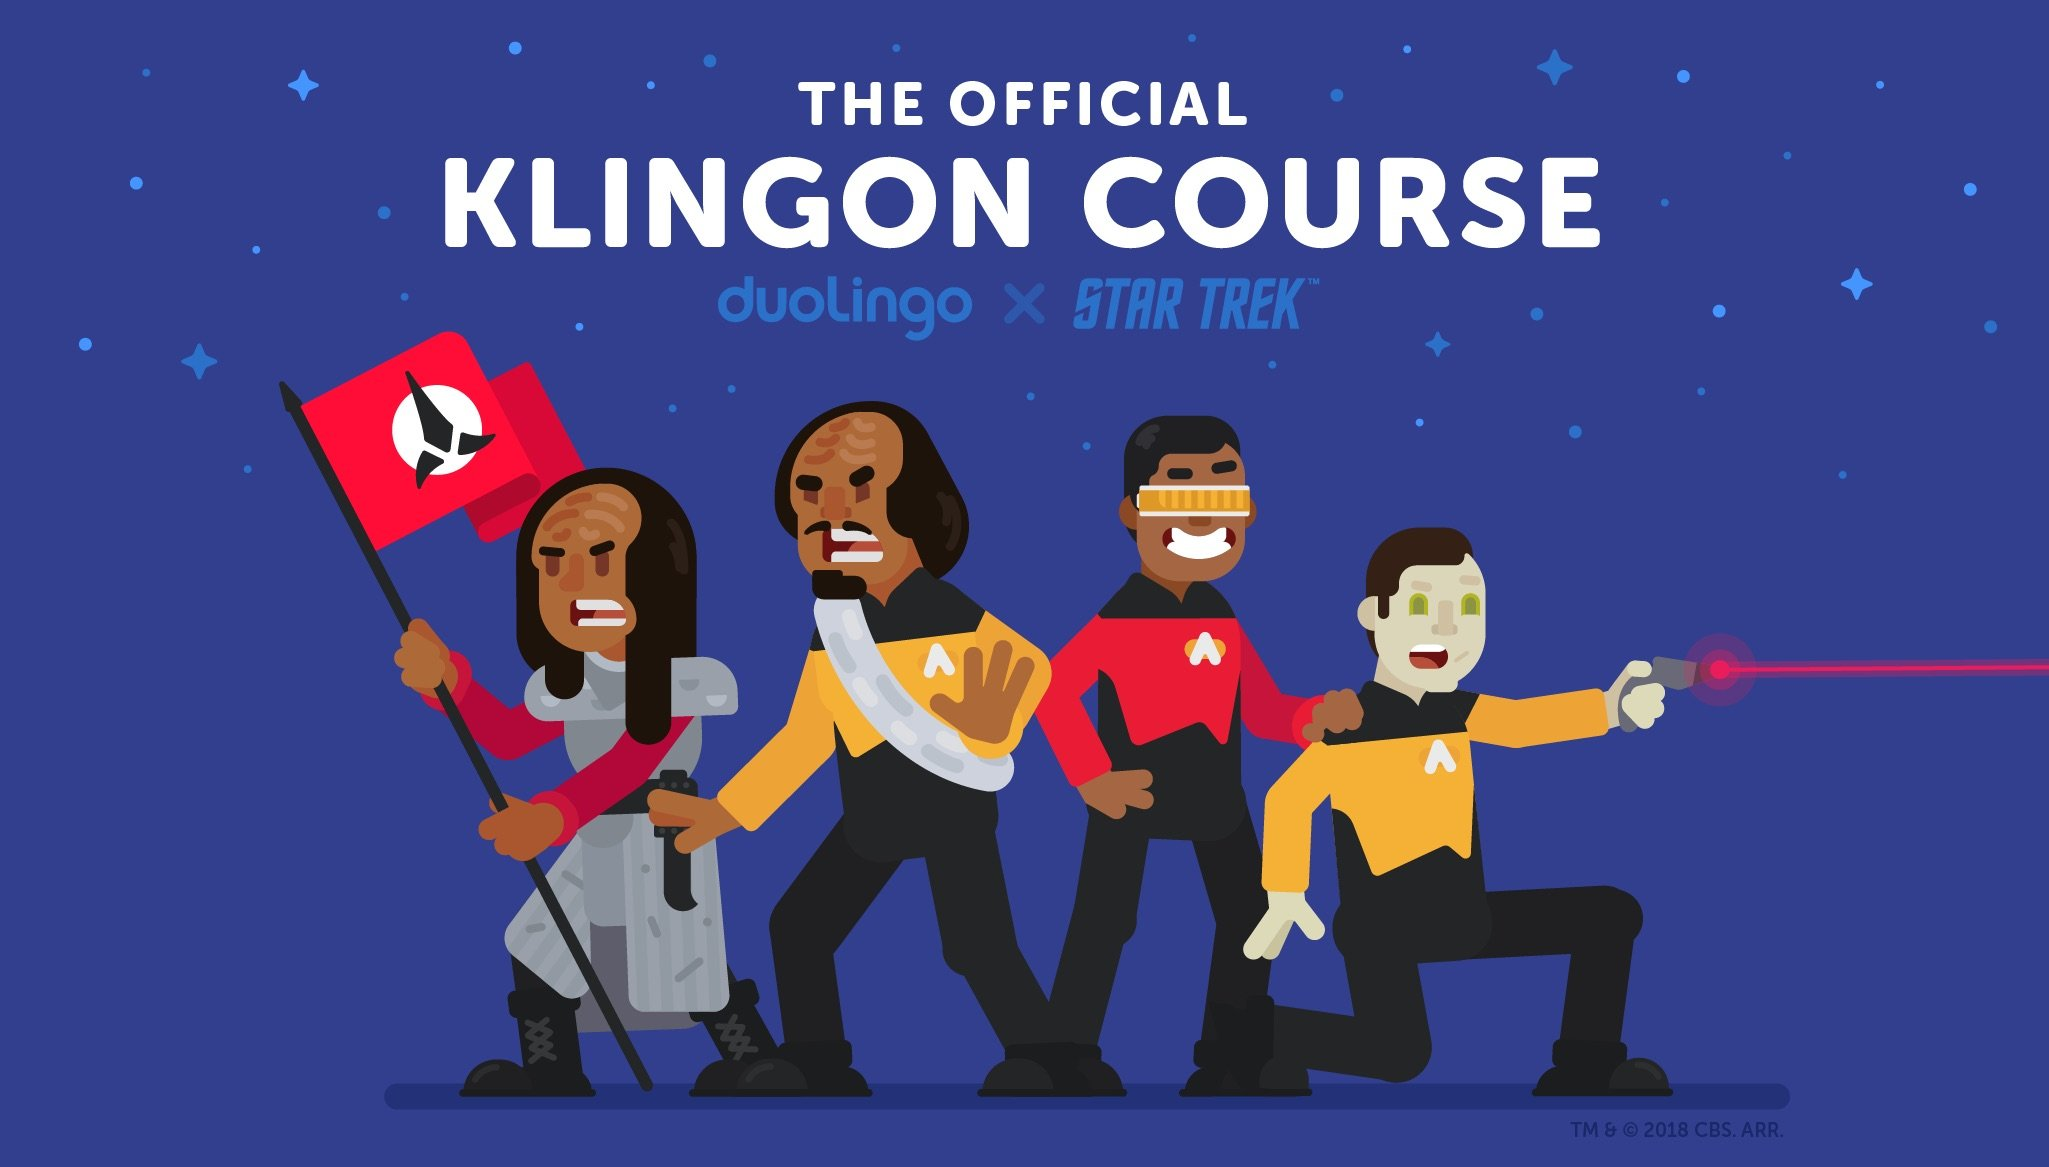 To learn the Klingon language from Star Trek now can anyone